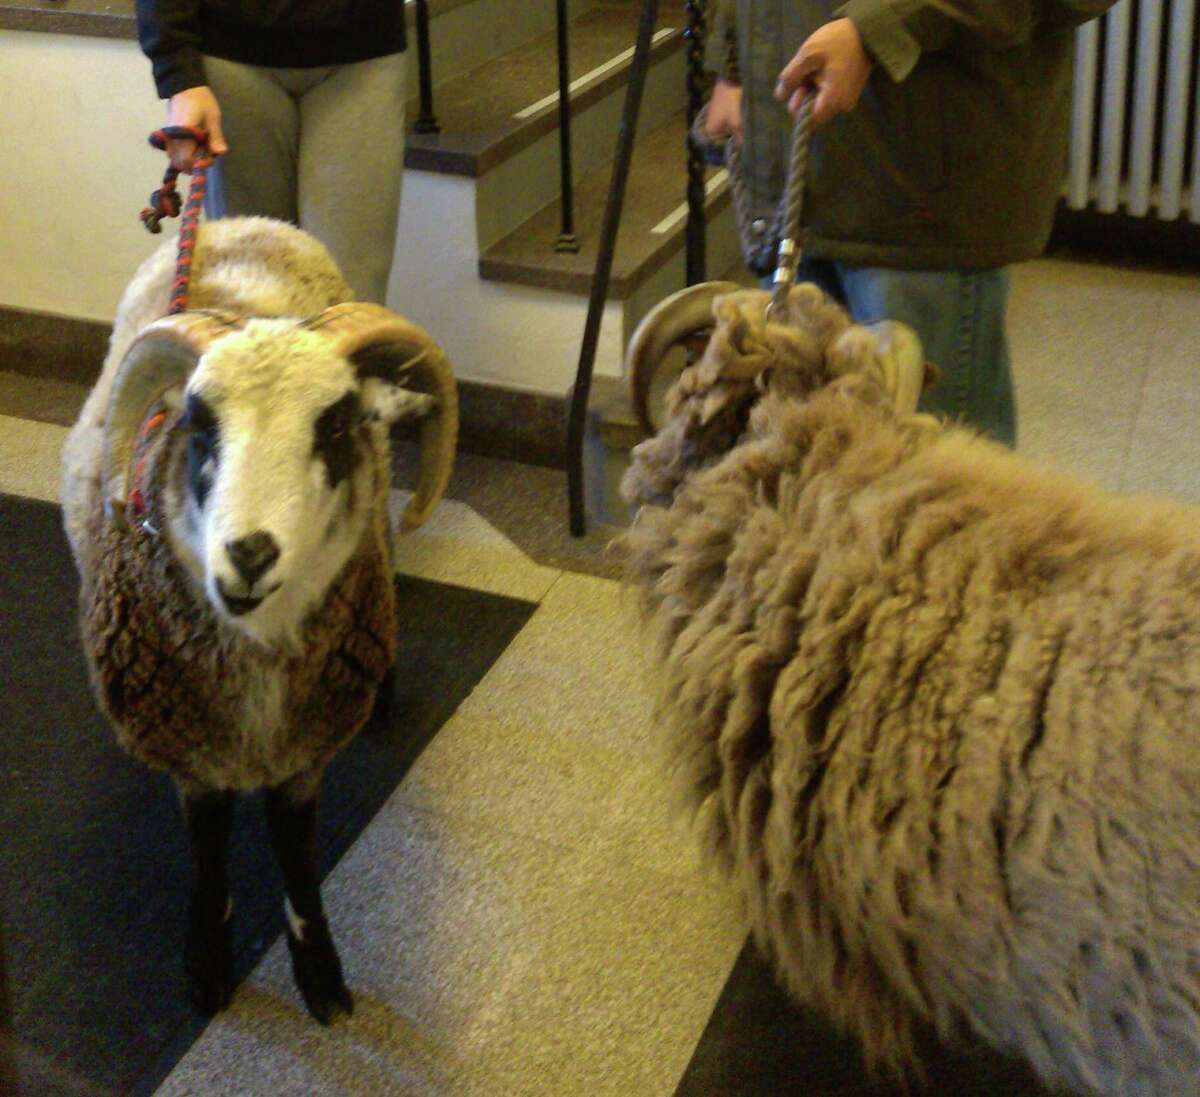 Two sheep rammed their way through a gate Monday morning and escaped from the living crèche that is on display outside First Congregational Church of Greenwich. The two escapees were quickly caught and shepherded back to their enclosure.